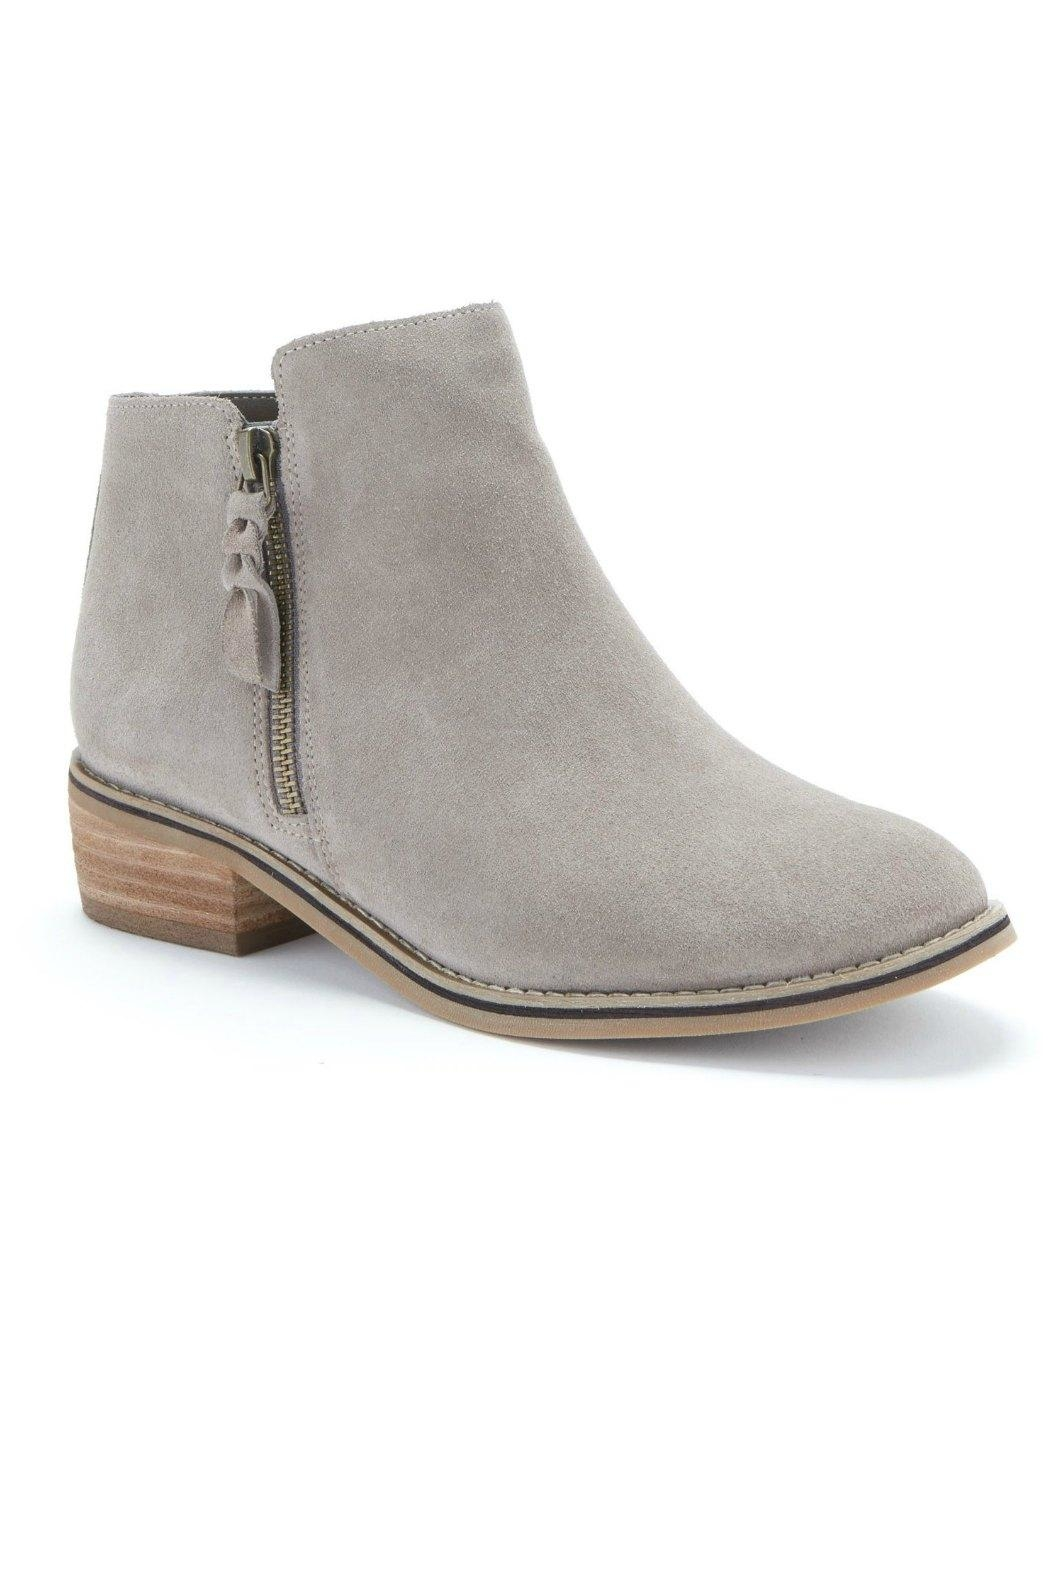 Blondo Liam Suede Boot - Front Cropped Image